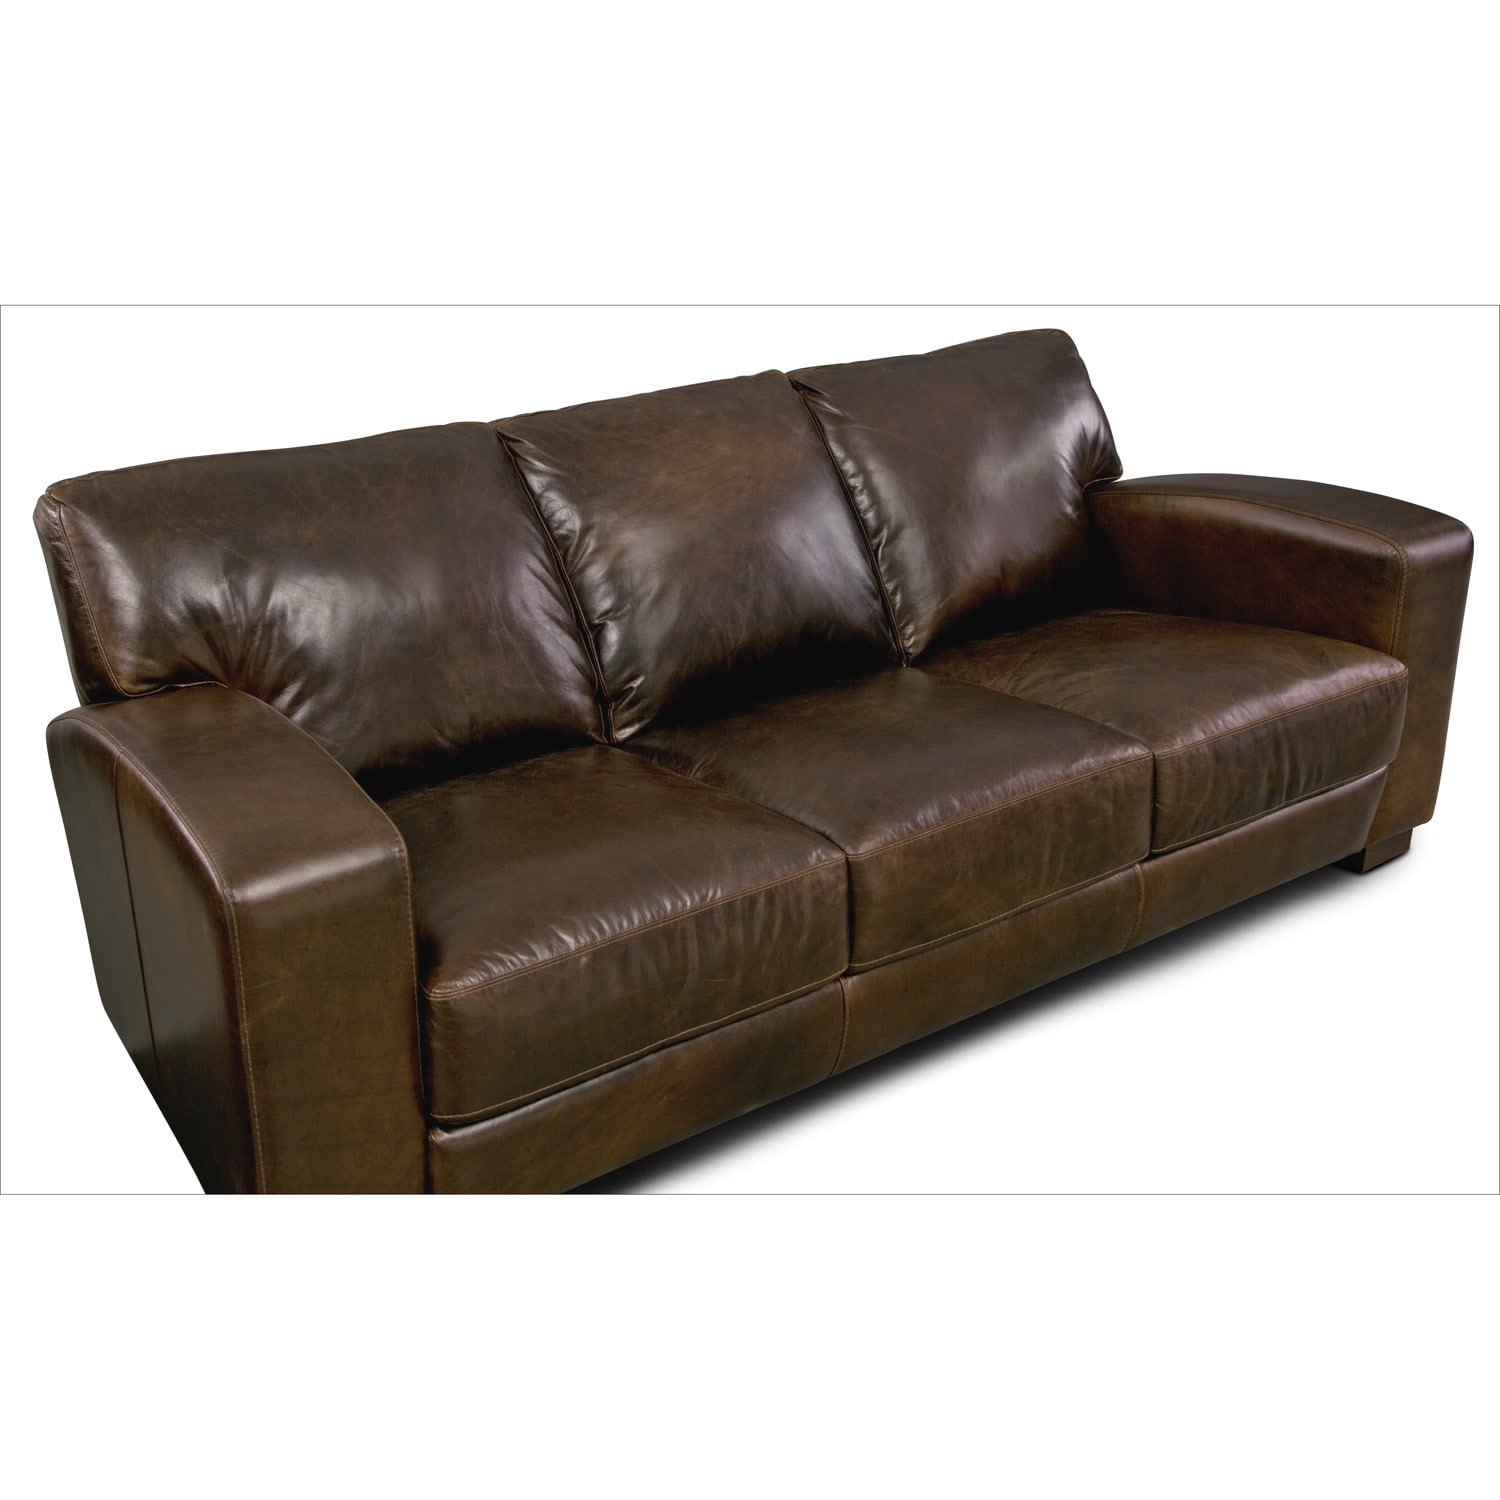 grayson sofa bed large throws leather value city furniture